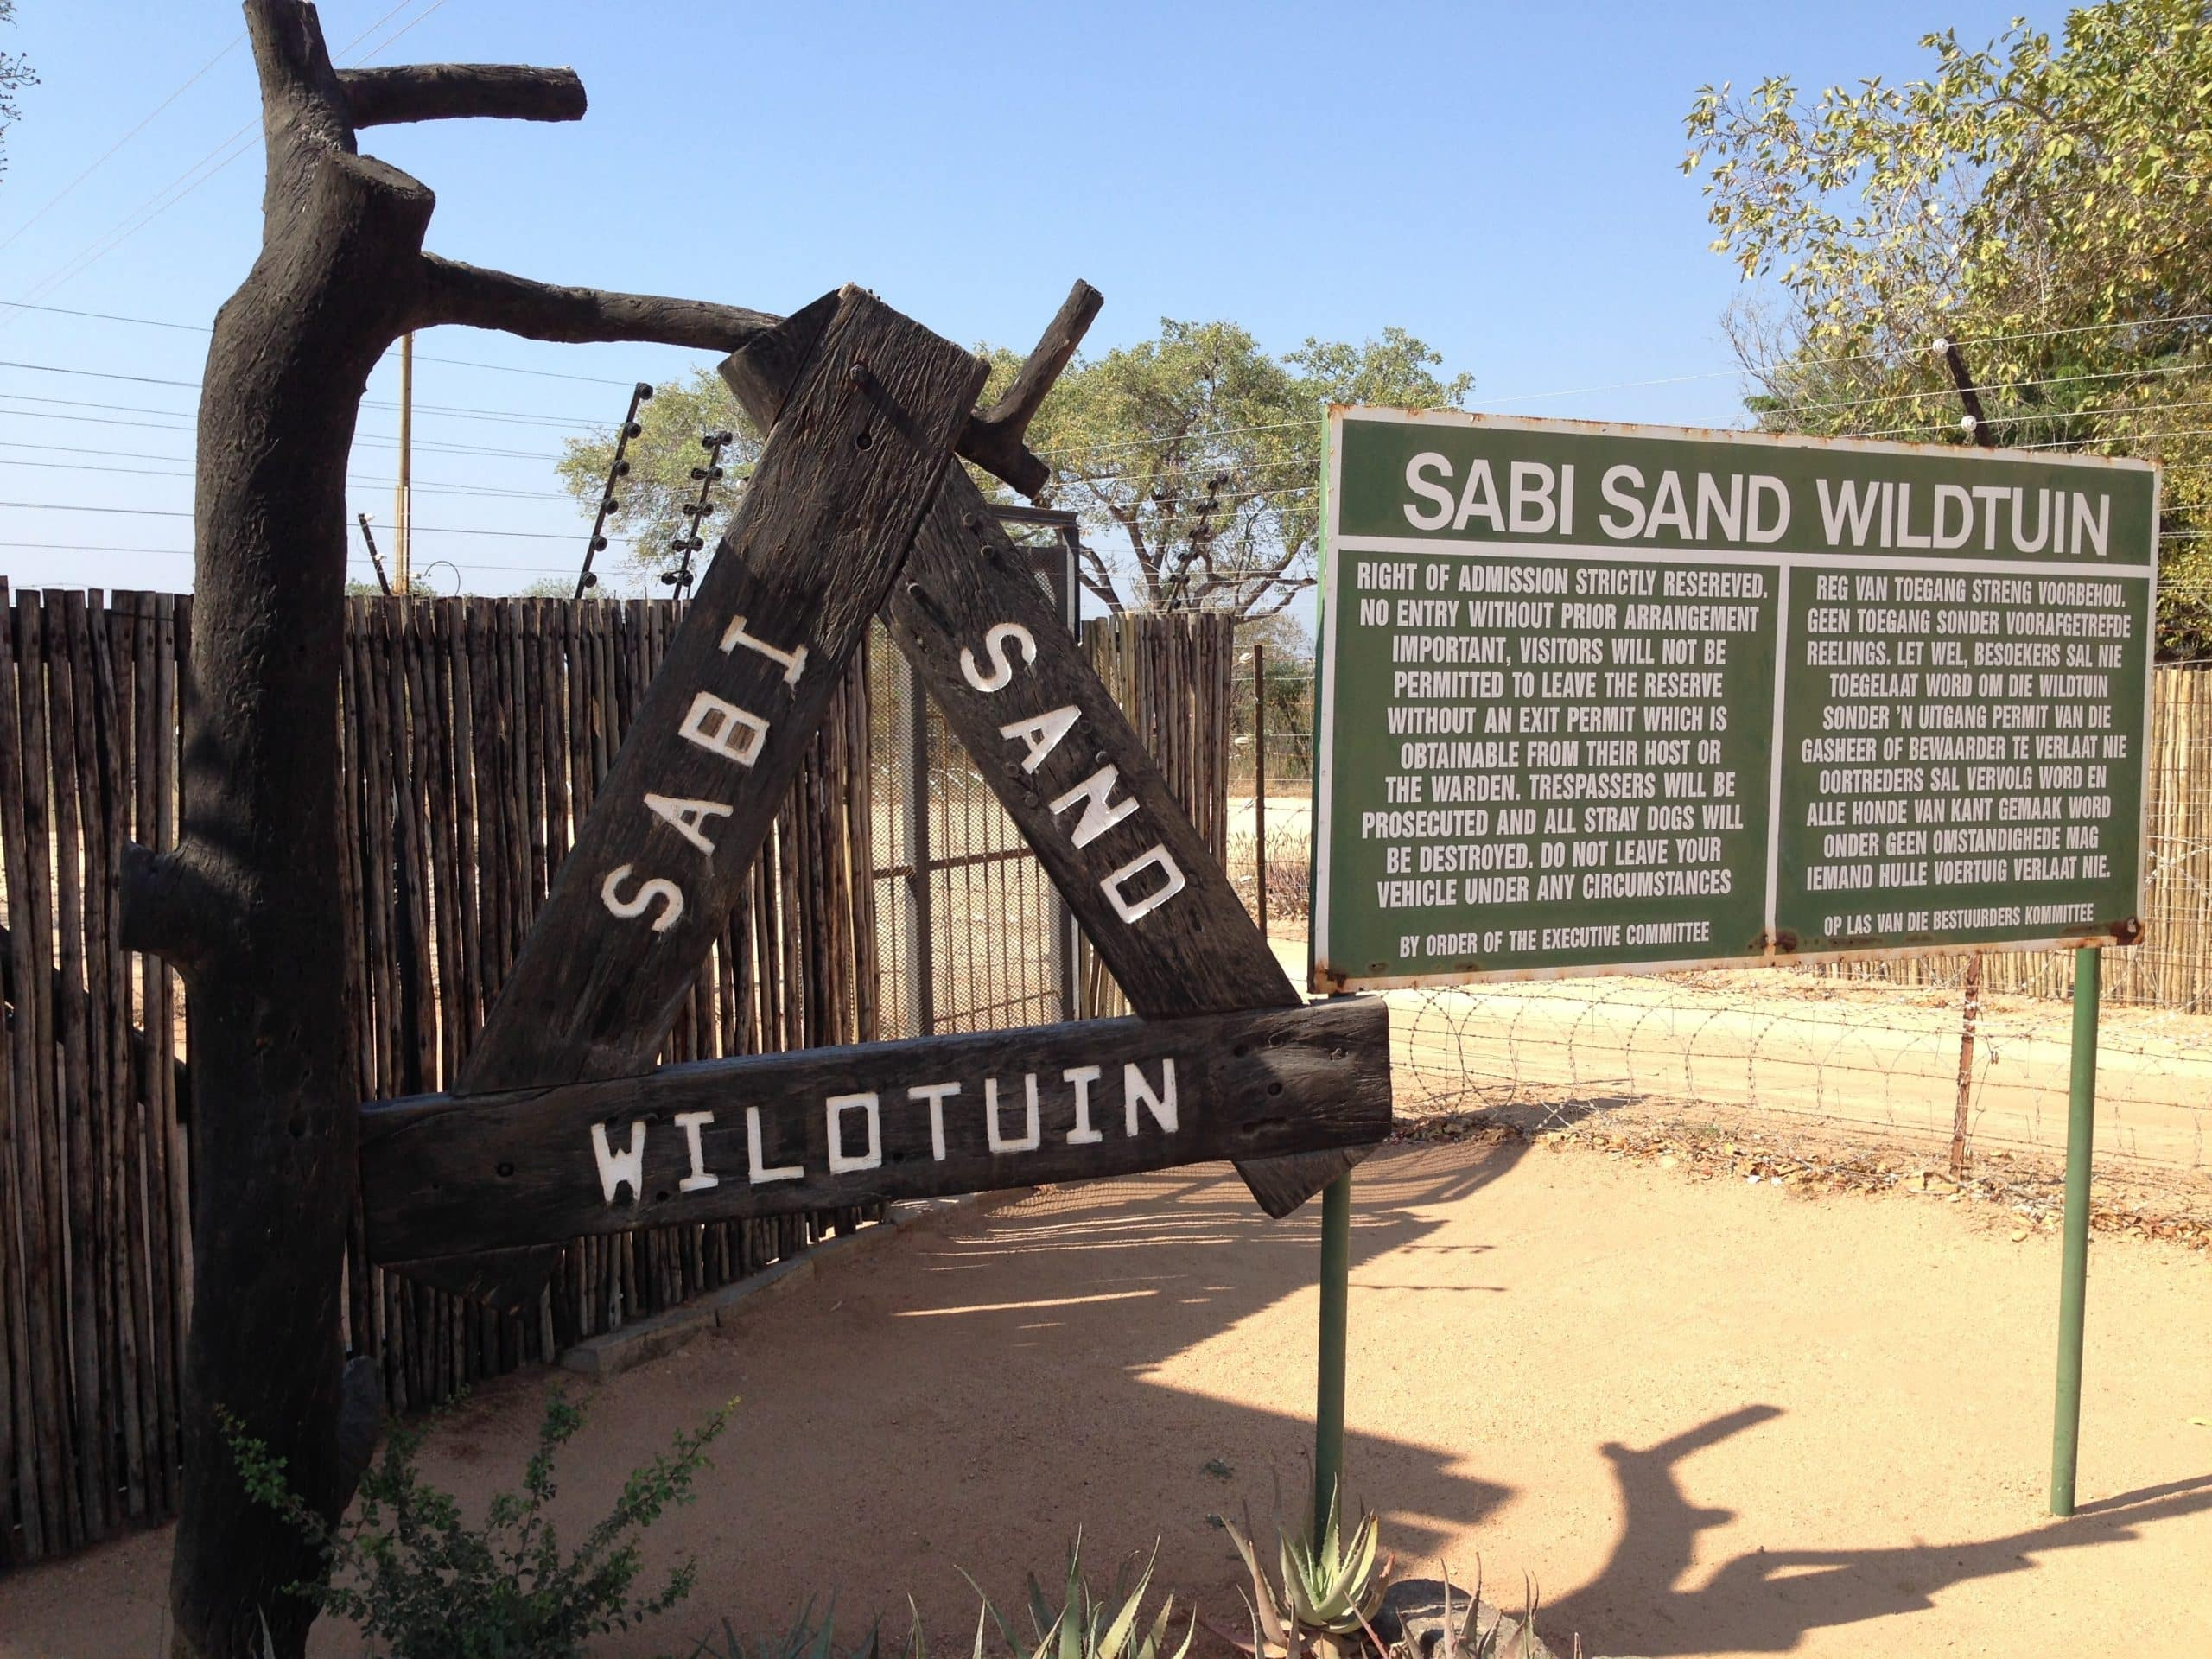 Shaws gate to Sabi Sand